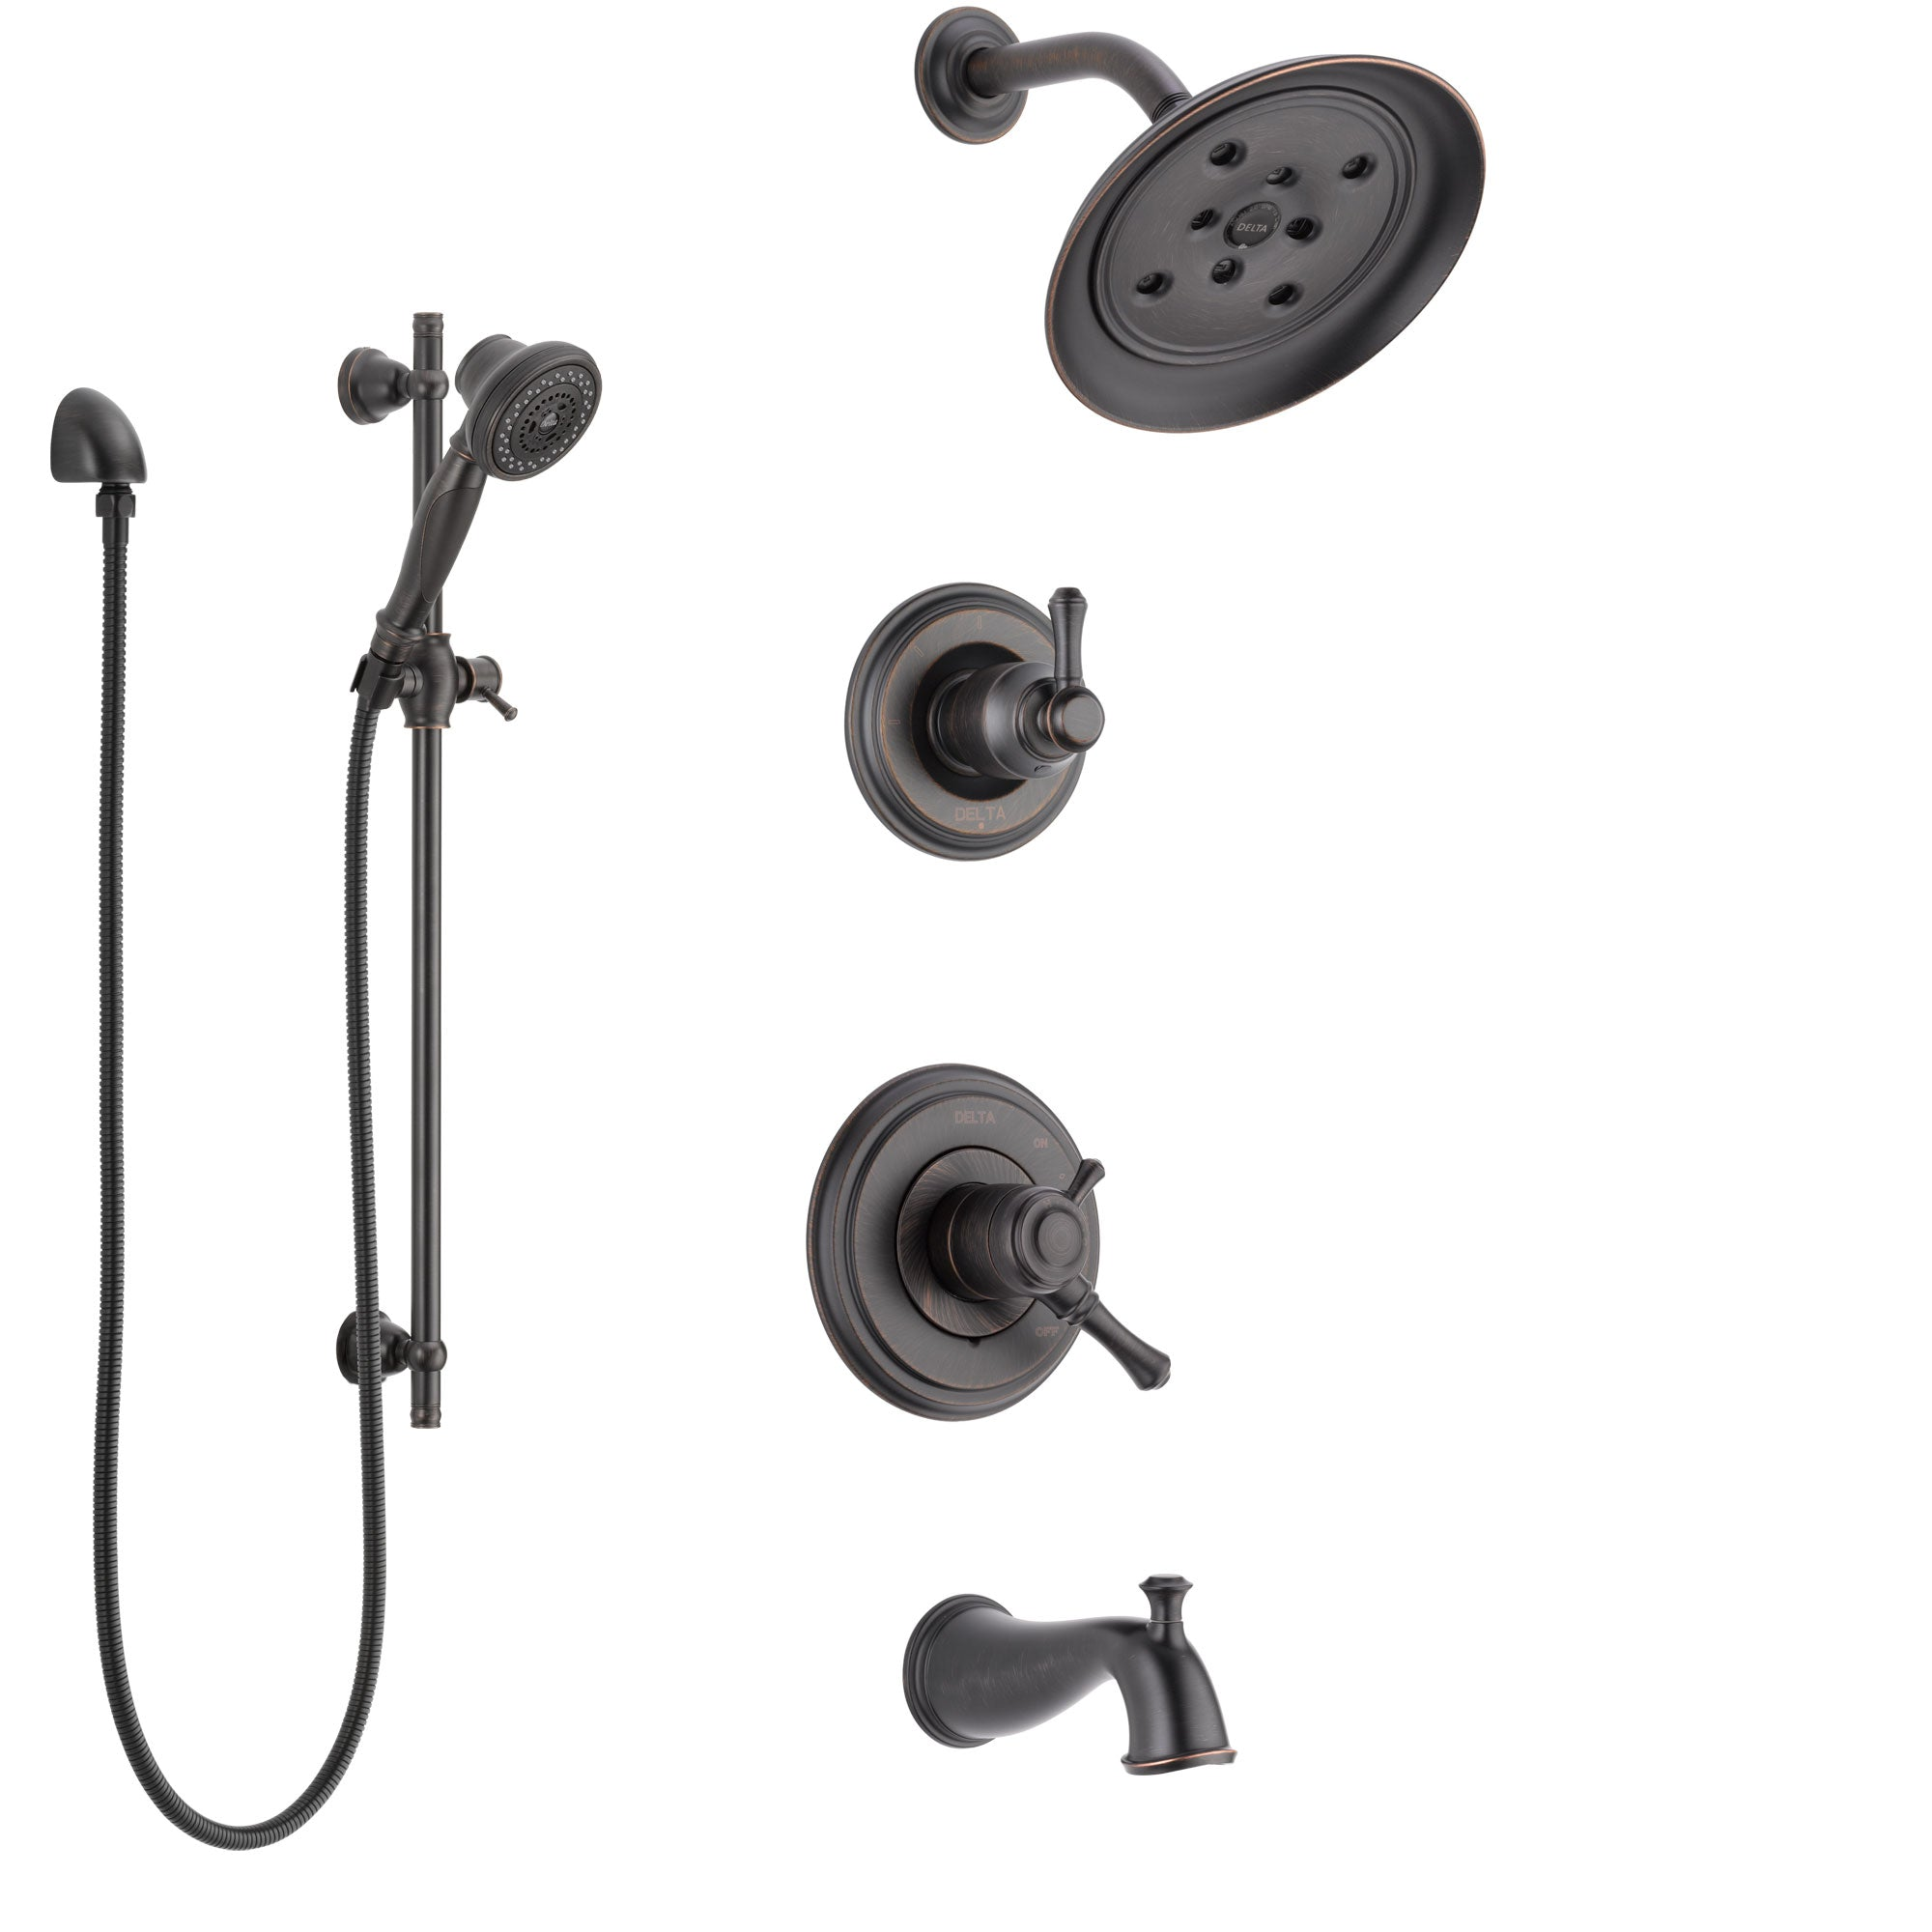 Delta Cassidy Venetian Bronze Tub and Shower System with Dual Control Handle, 3-Setting Diverter, Showerhead, and Hand Shower with Slidebar SS17497RB5